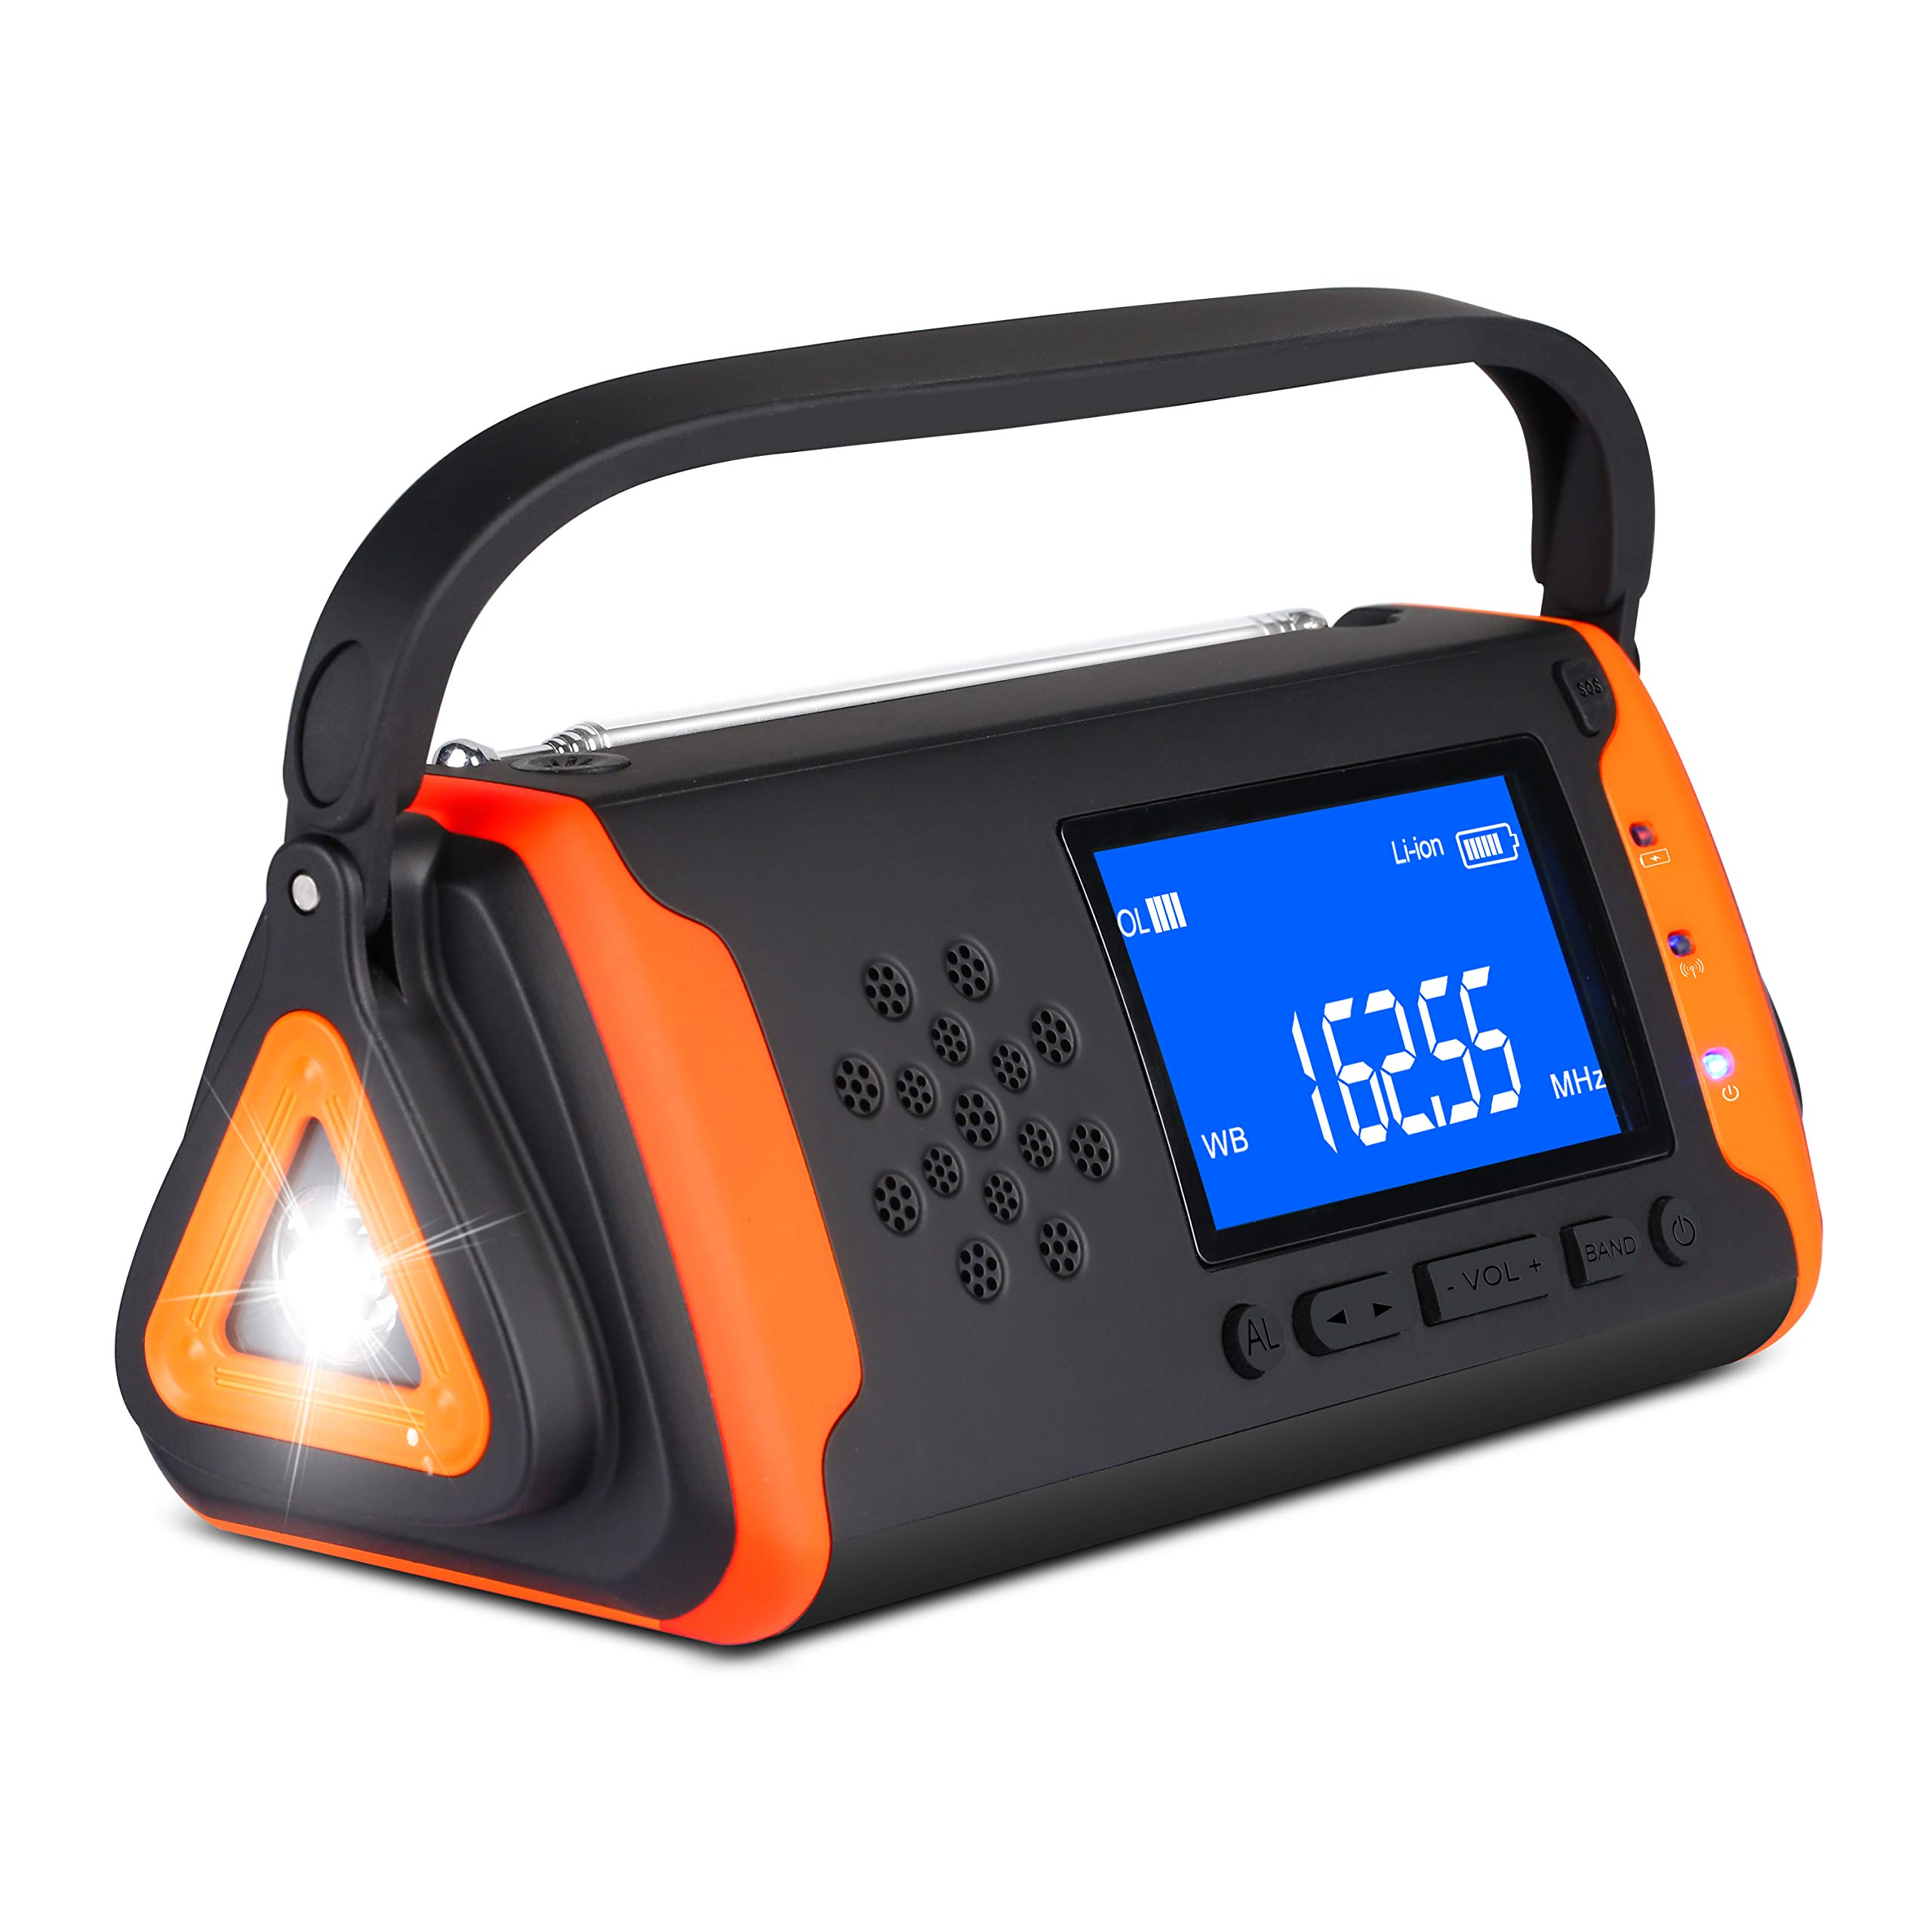 Emergency Weather Crank Radio 4000mAh - Portable, Solar Powered, Hand Crank, AM/FM/NOAA Weather Alert Radio, Aux Music Play, USB Cell Phone Charger, SOS Alarm, LED Flashlight for Hurricanes,Tornadoes by Outtdoor